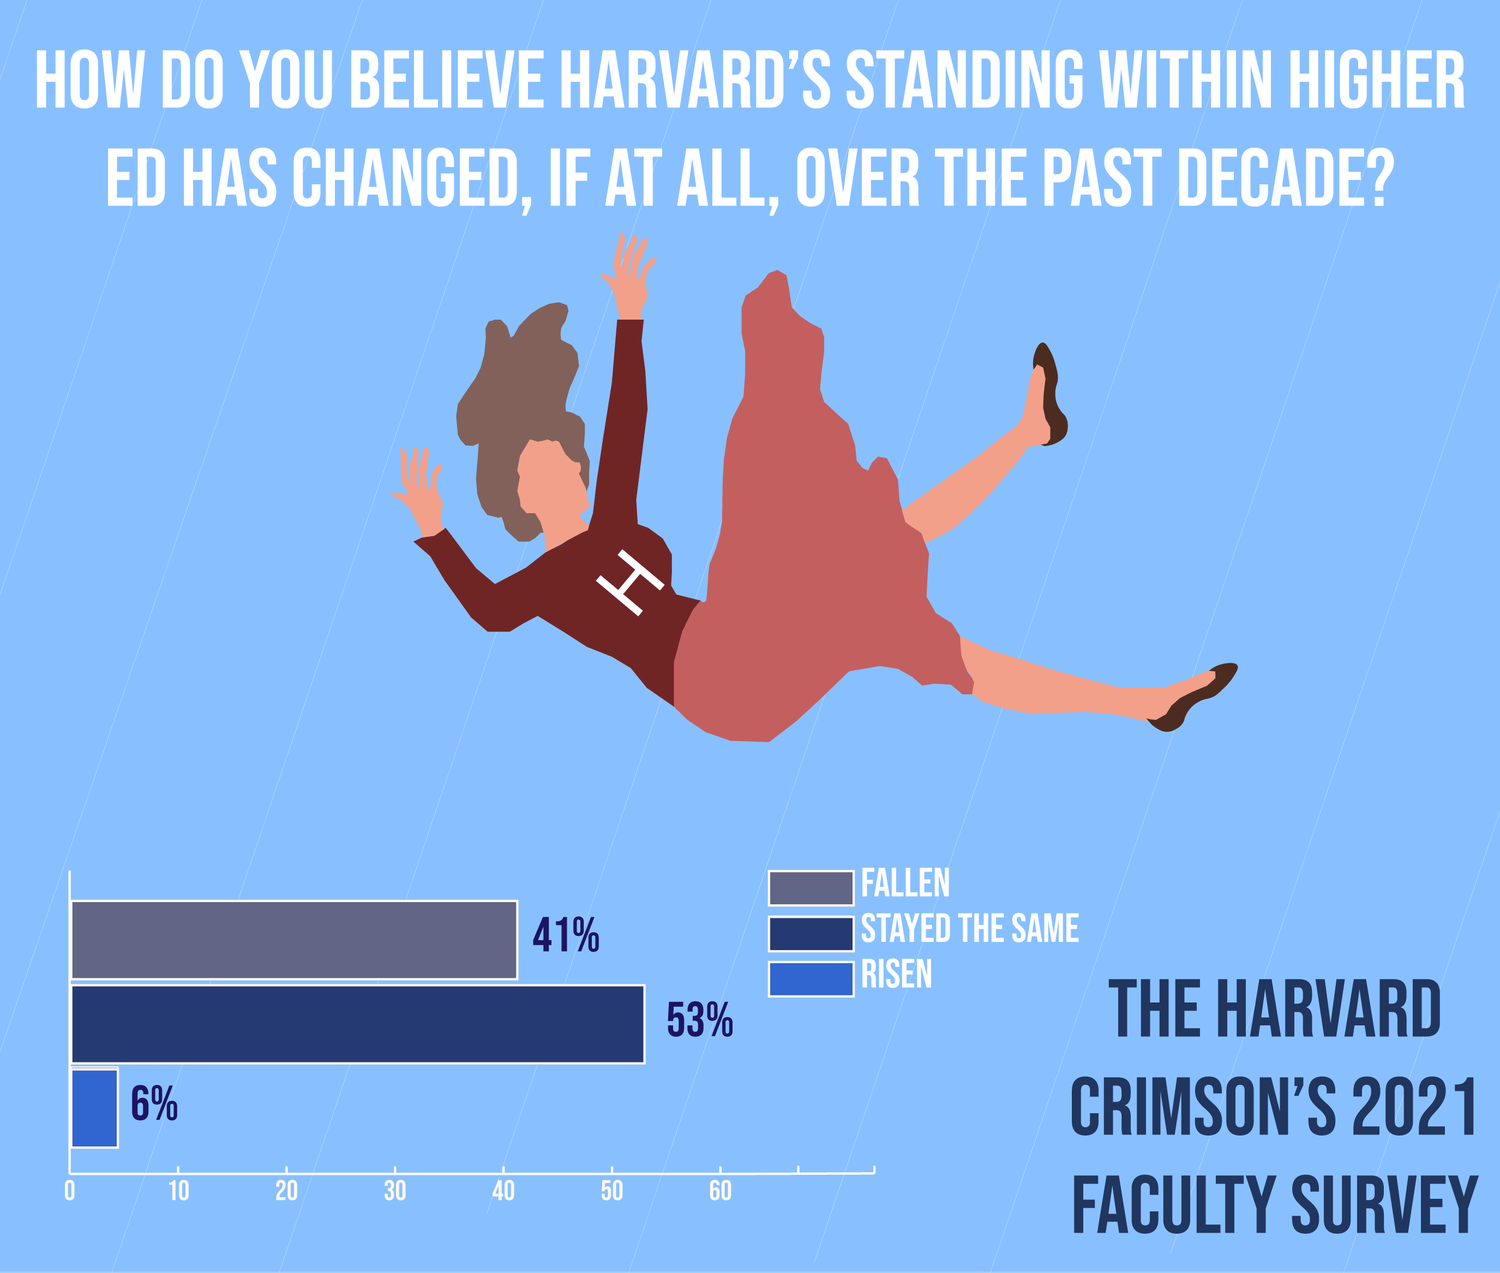 Over 40 percent of respondents to The Crimson's survey of Harvard's Faculty of Arts and Sciences said they believe the University's standing within higher education has fallen during the past decade.